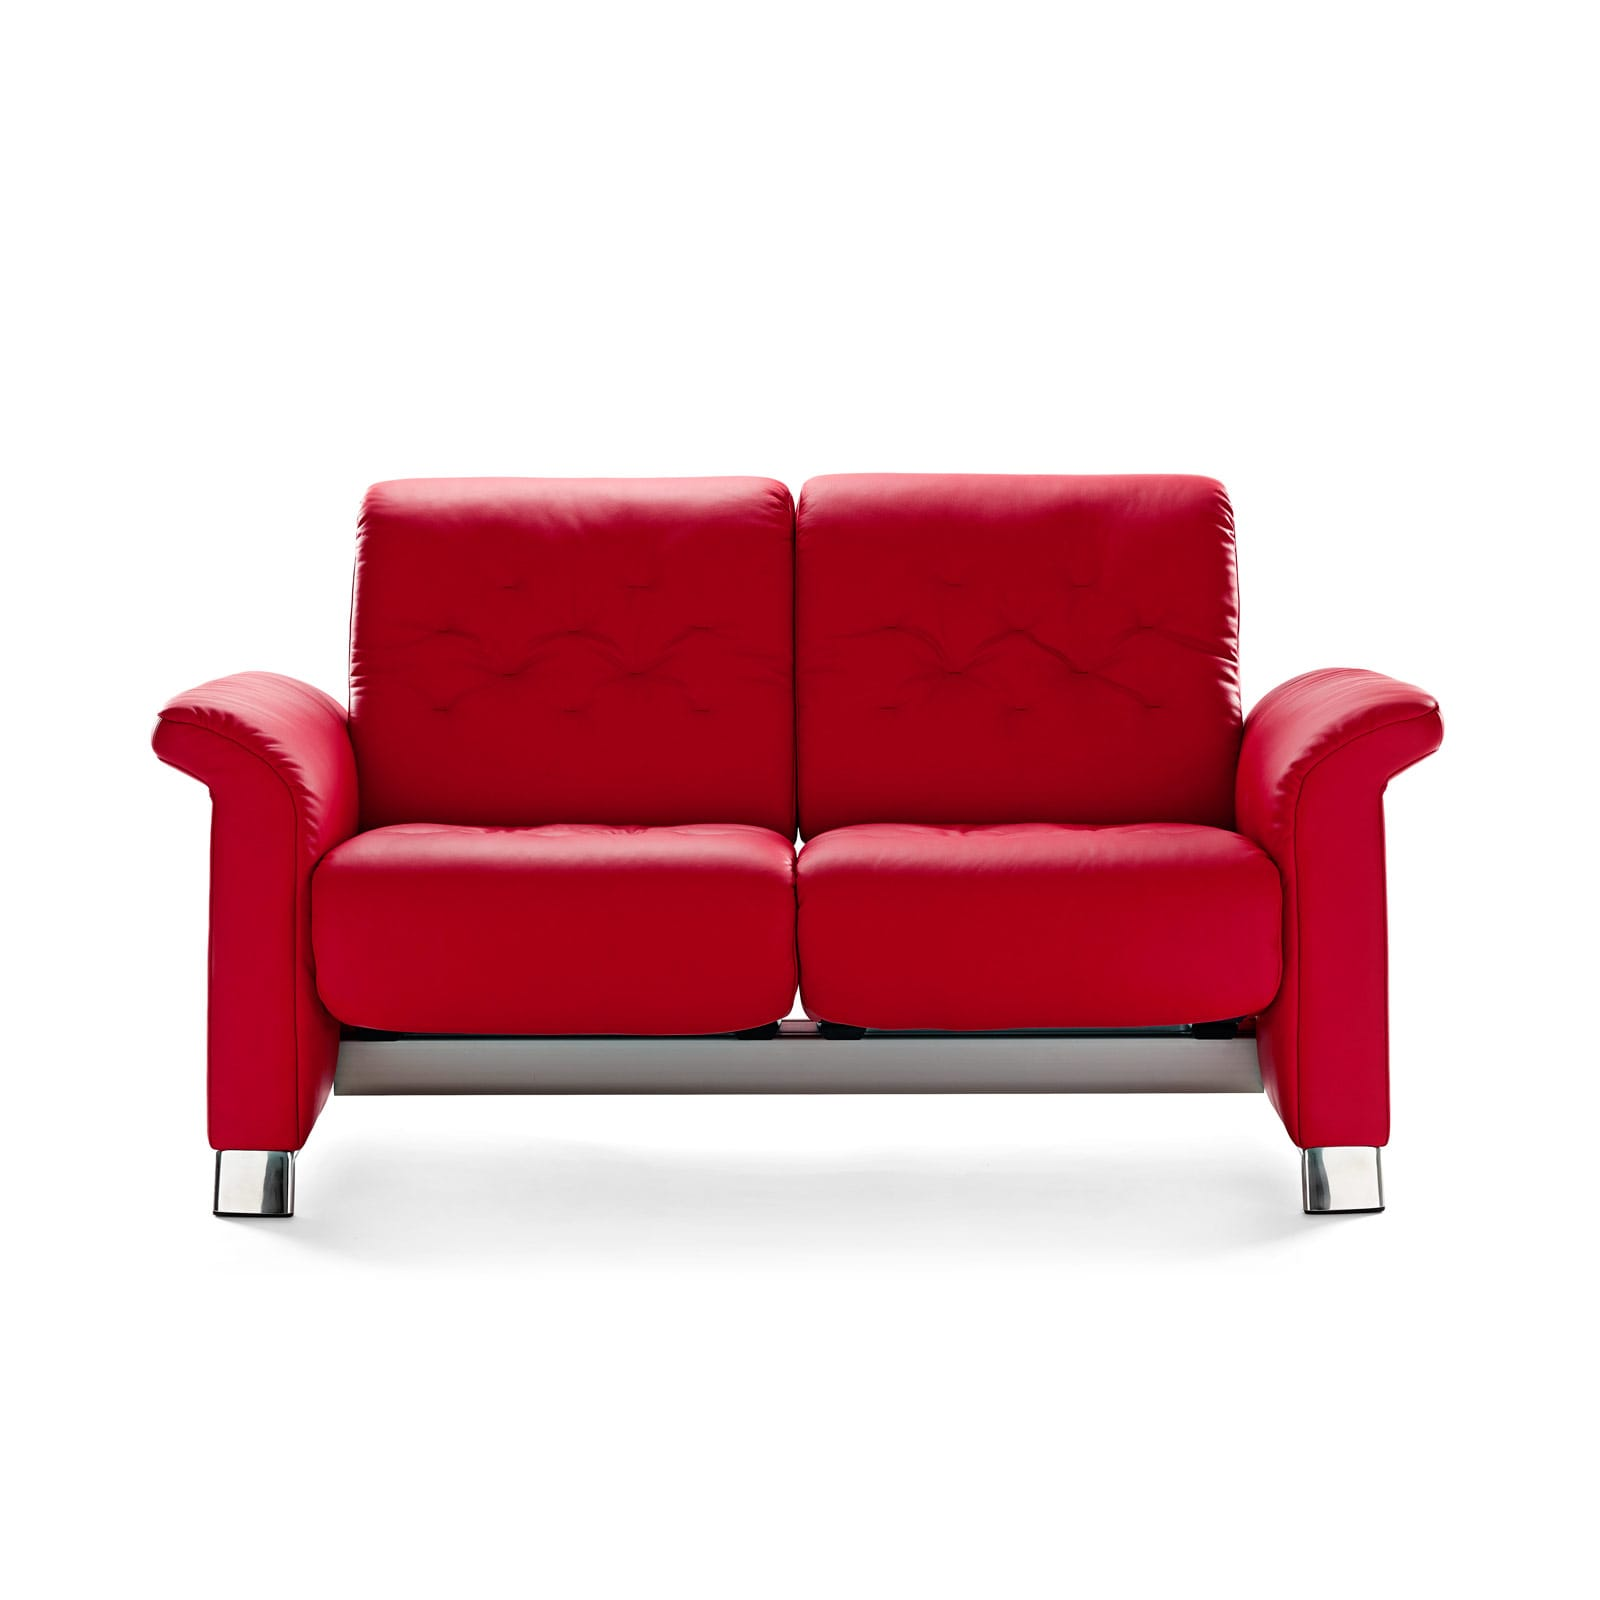 Stressless sofa preise stressless sessel preise for Stressless sessel modelle